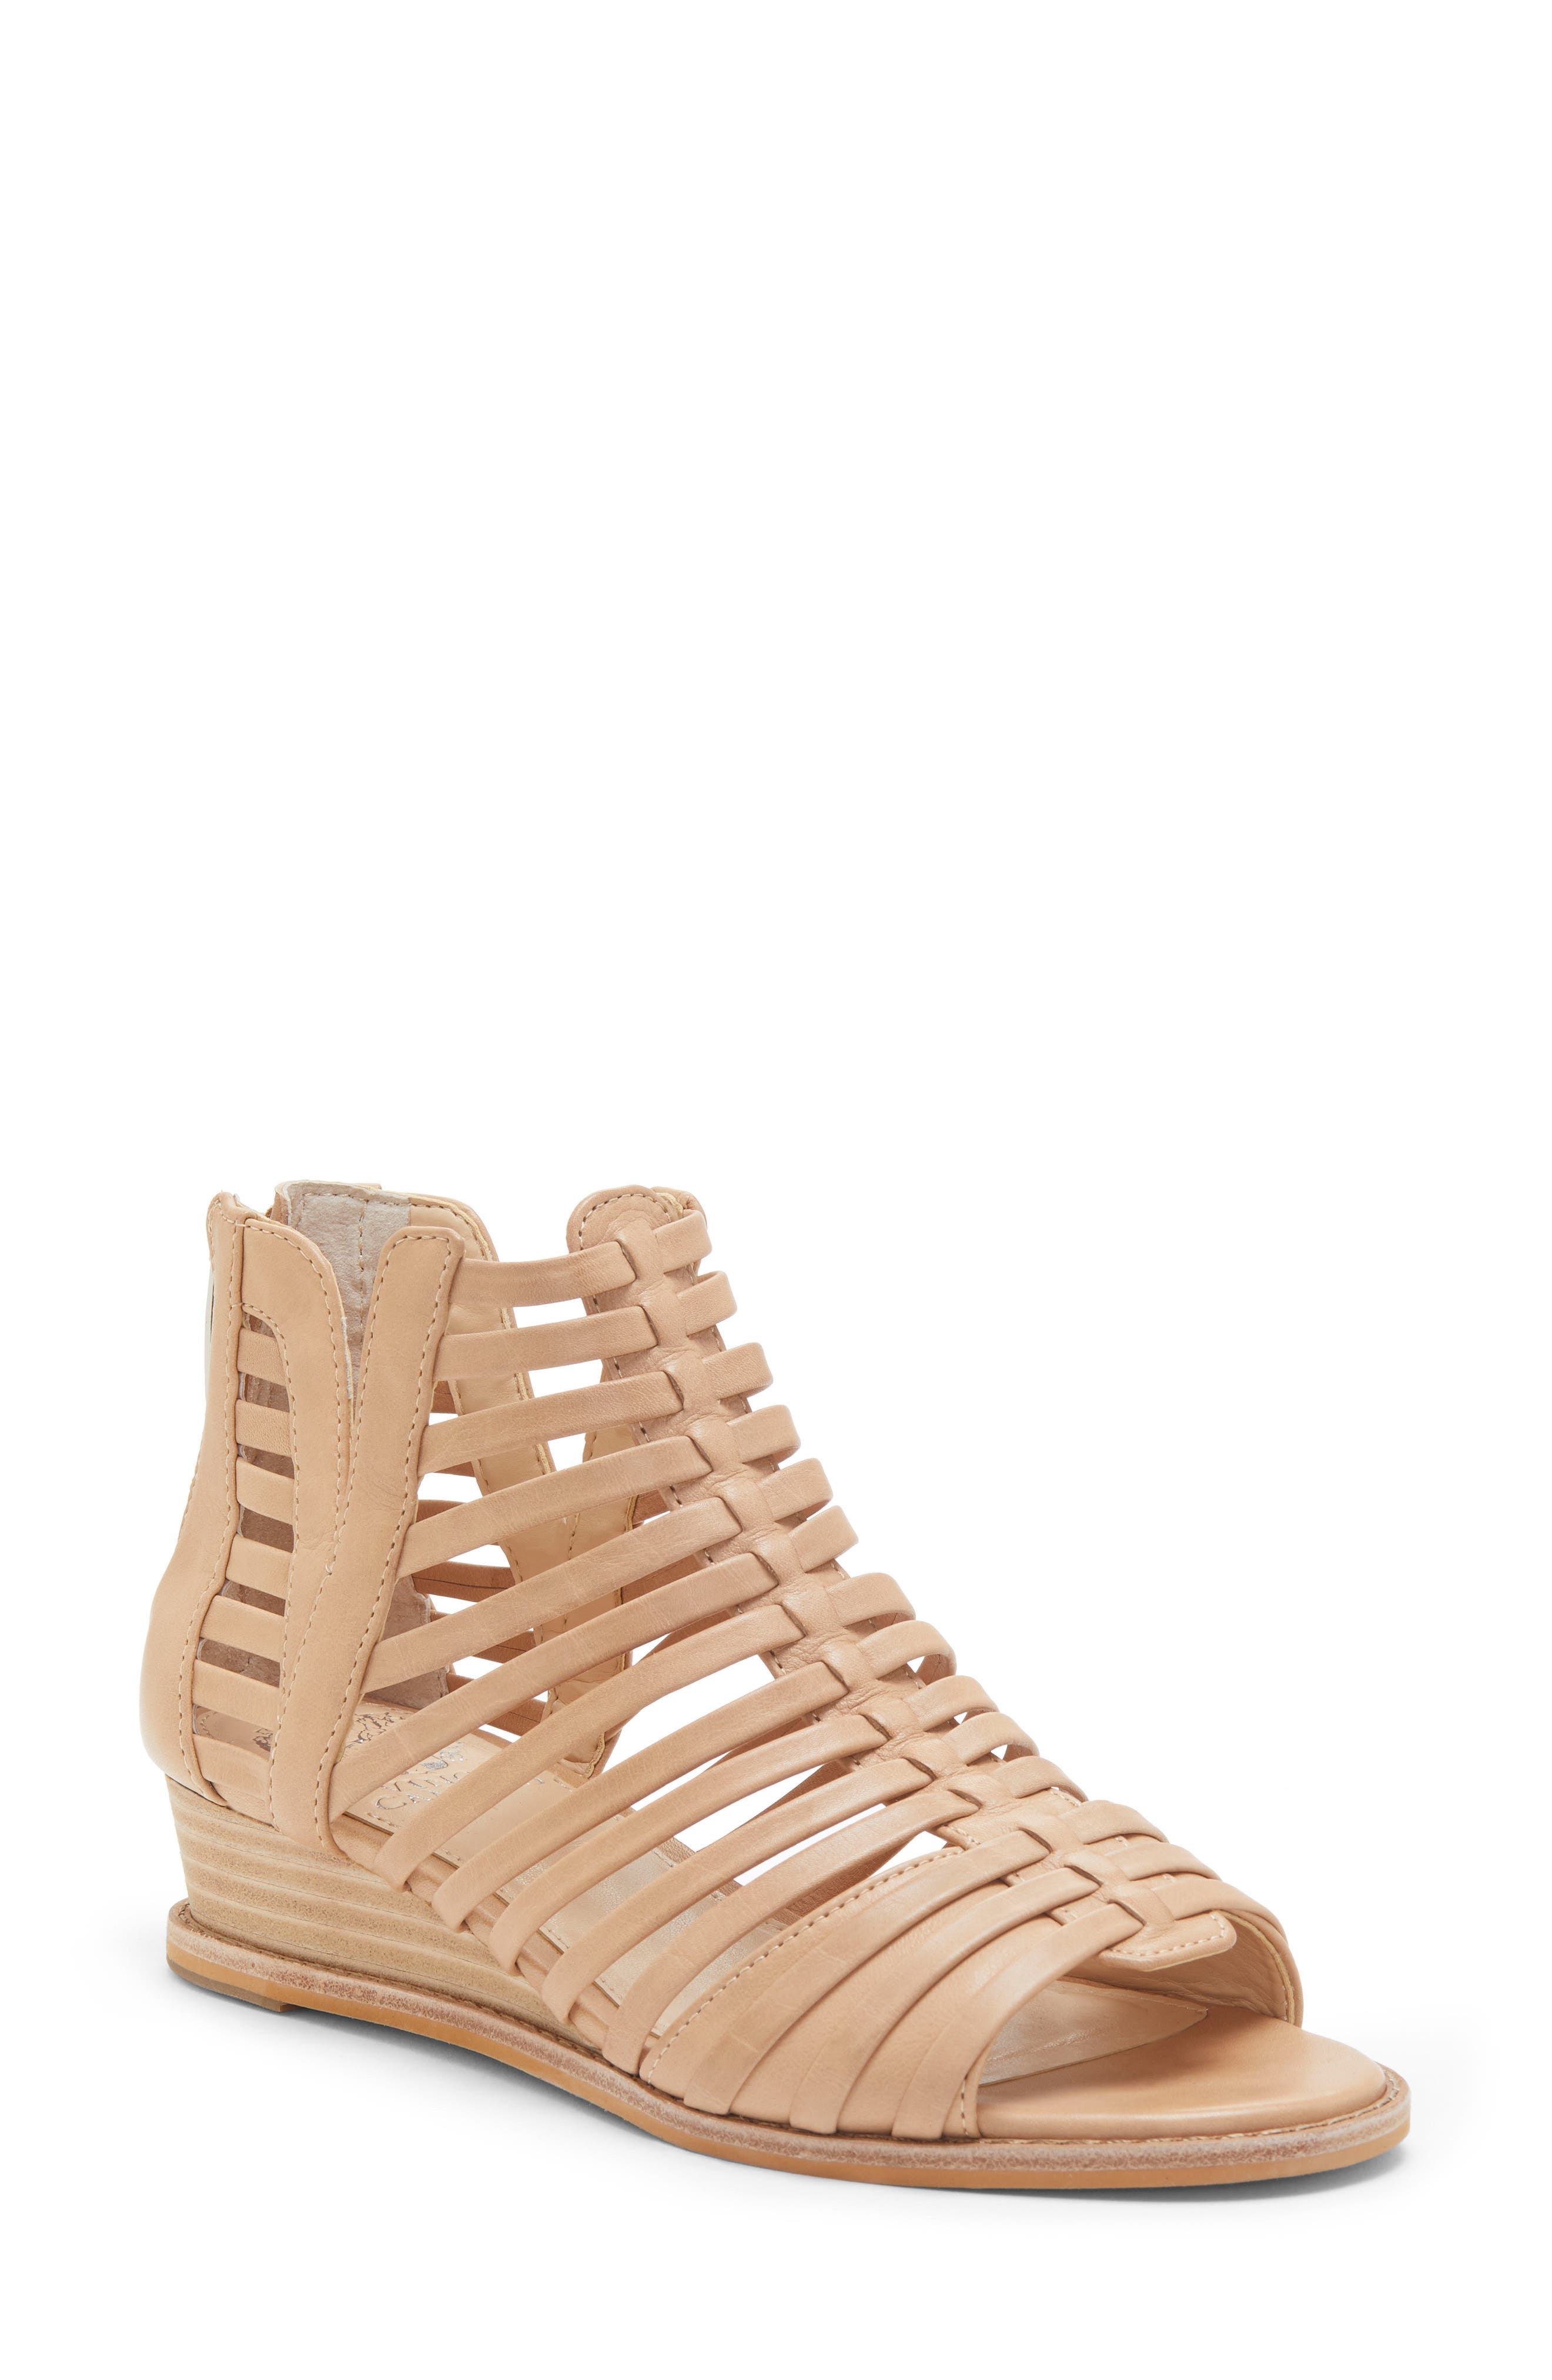 VINCE CAMUTO, Revey Wedge Sandal, Main thumbnail 1, color, NATURAL LEATHER